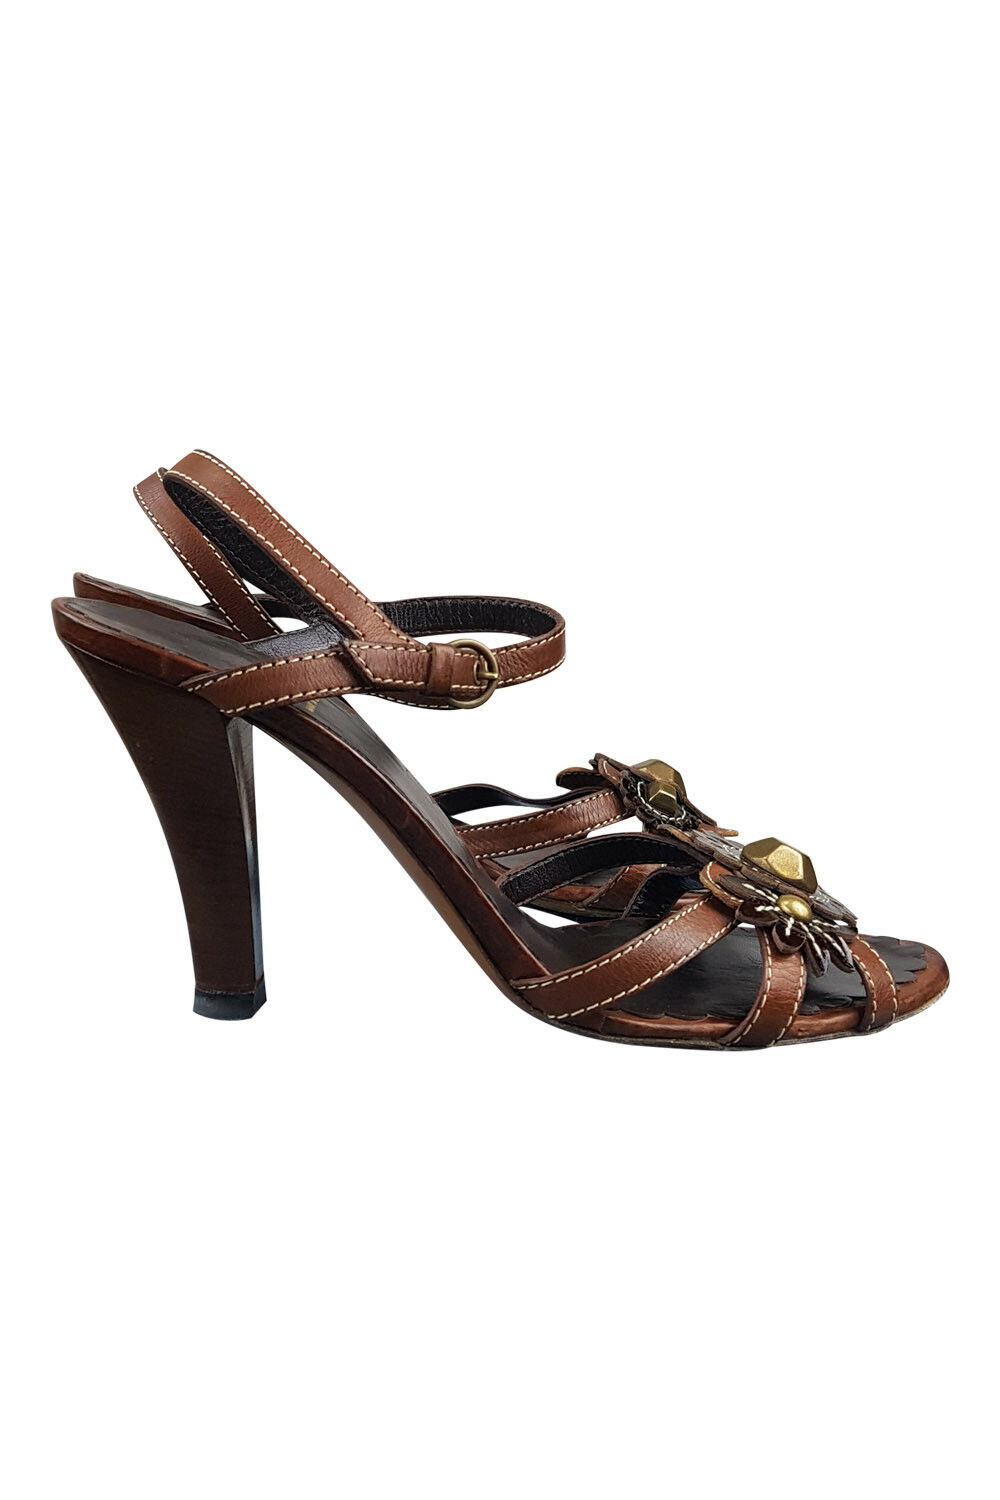 *MOSCHINO* BROWN BROWN *MOSCHINO* HIGH HEELED STRAPPY SANDALS 9a92af